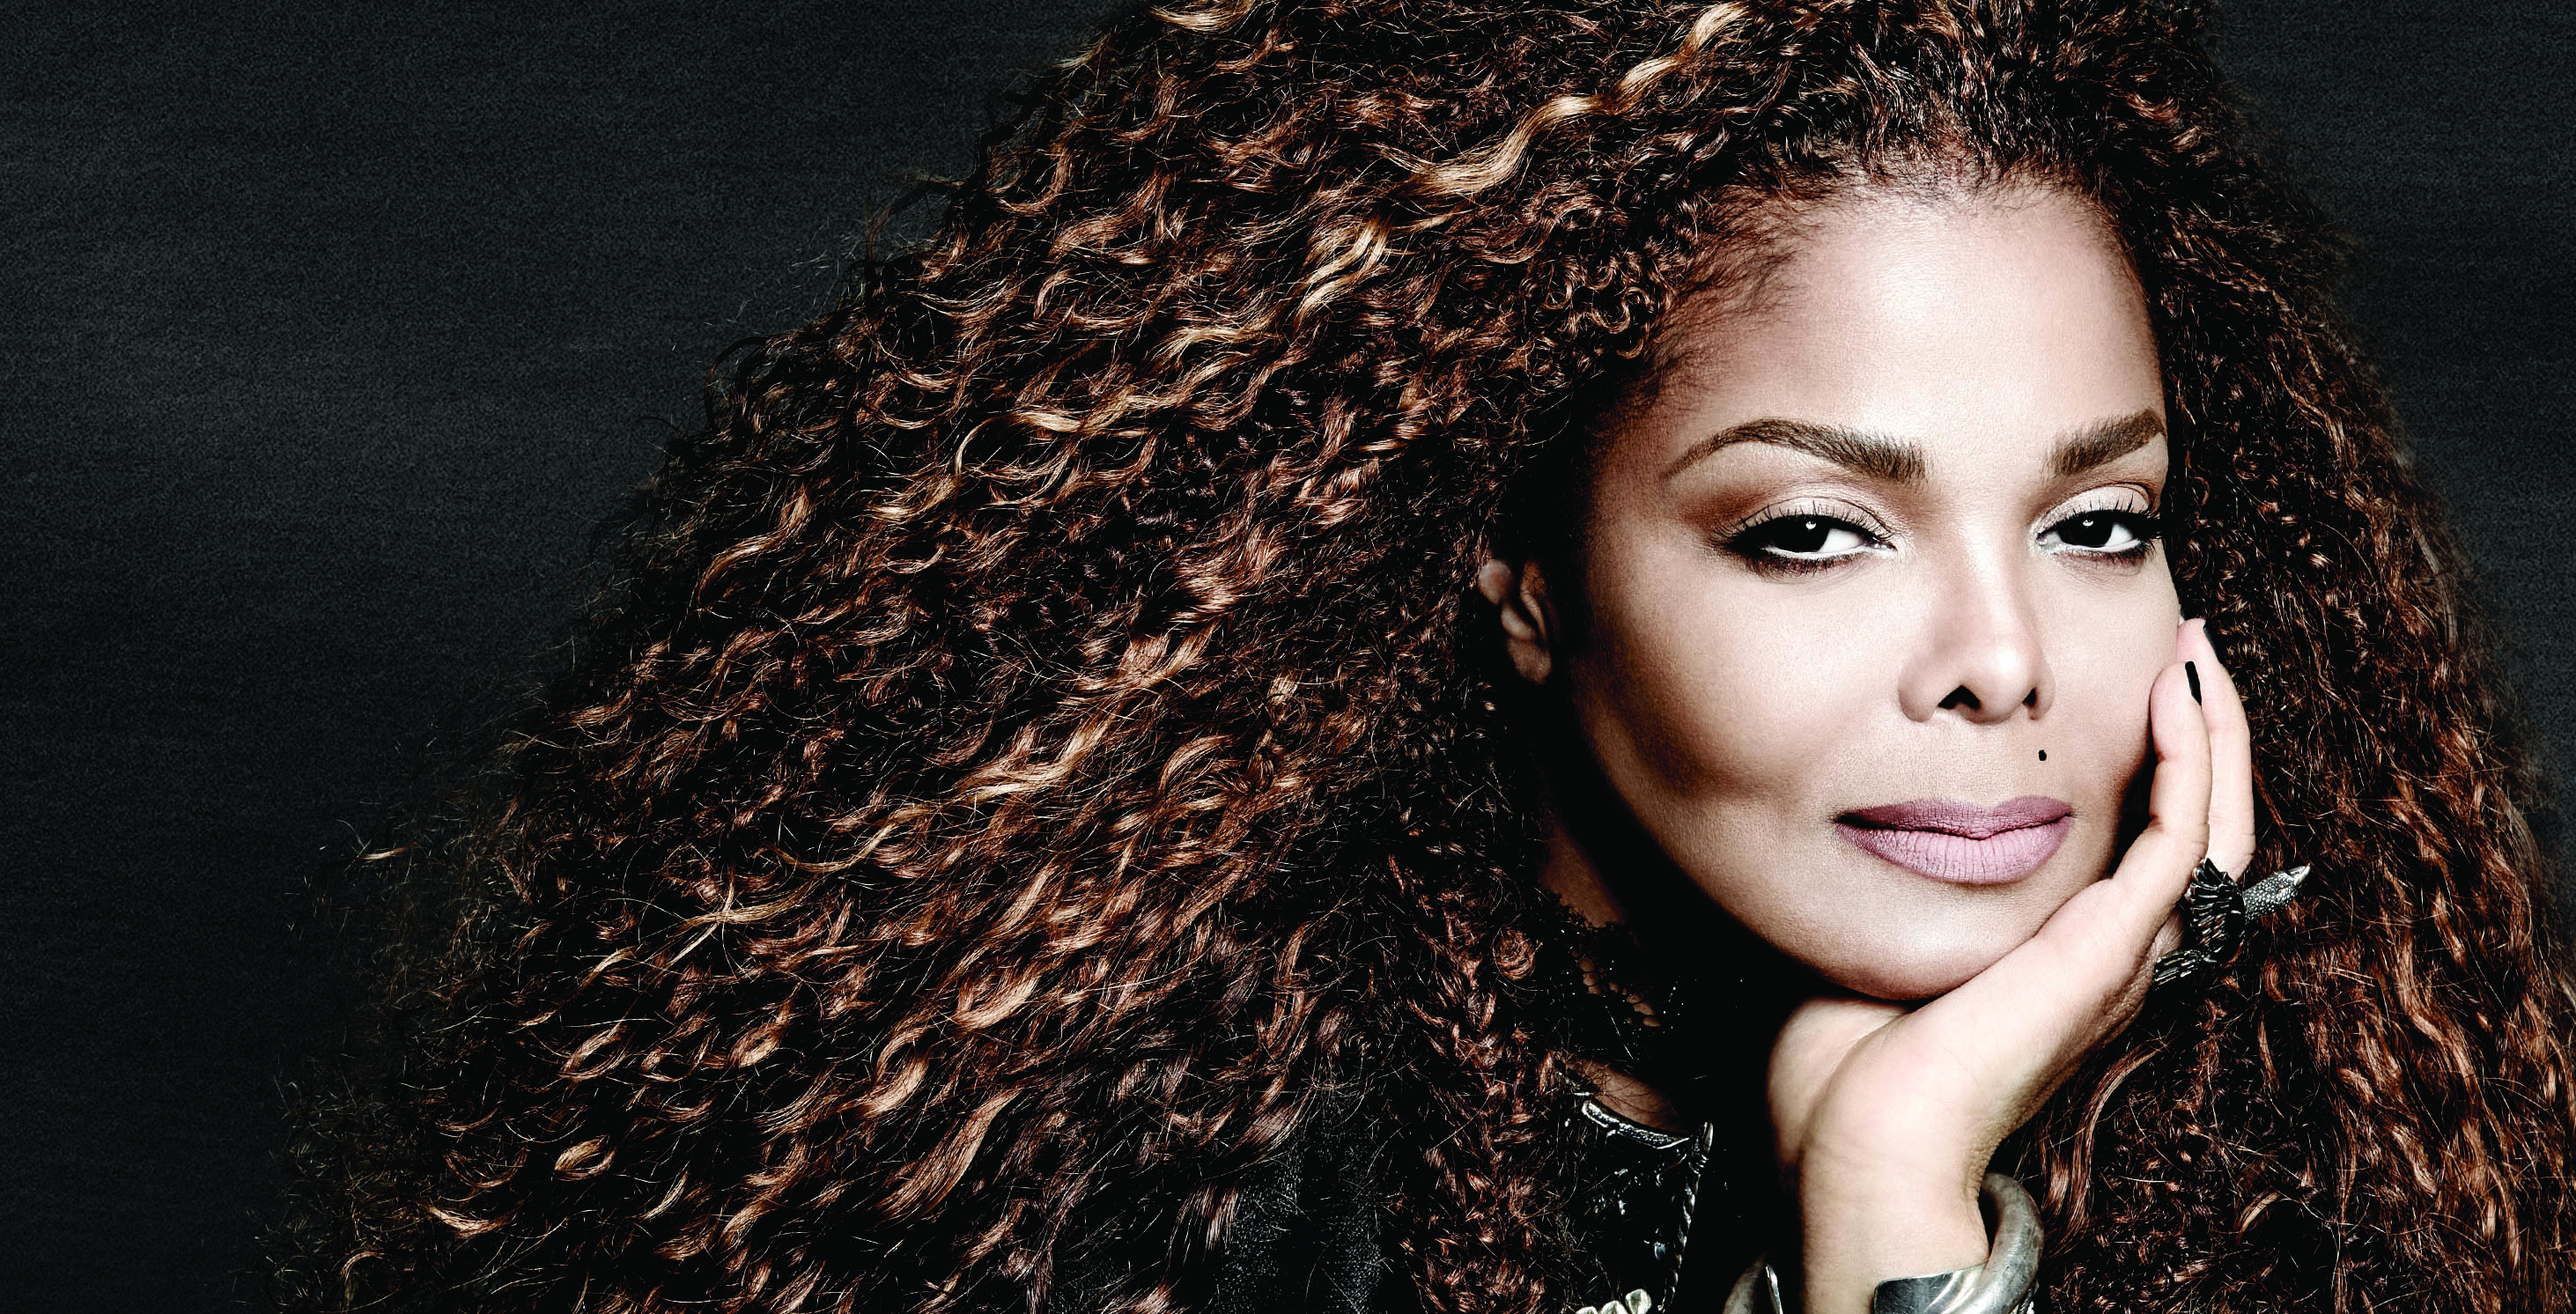 Pictures of Janet Jackson - Posts   Facebook